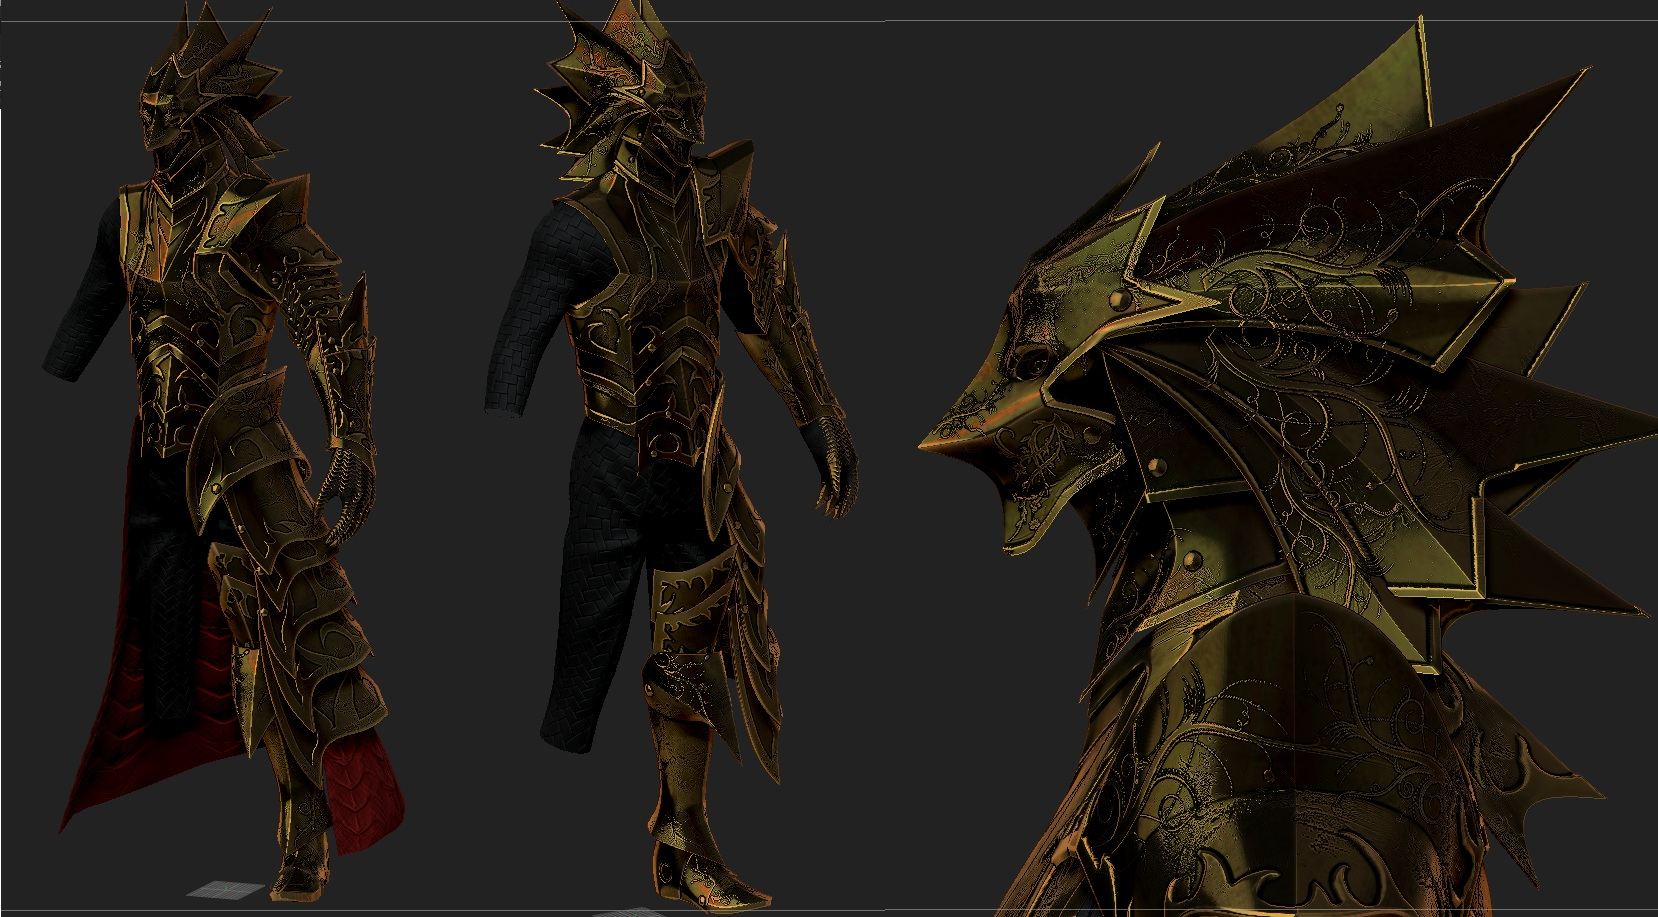 Knight Of Thorns Gold Armor For Skyrim By Zerofrust On Deviantart Subscribe to see more skyrim mod videos. knight of thorns gold armor for skyrim